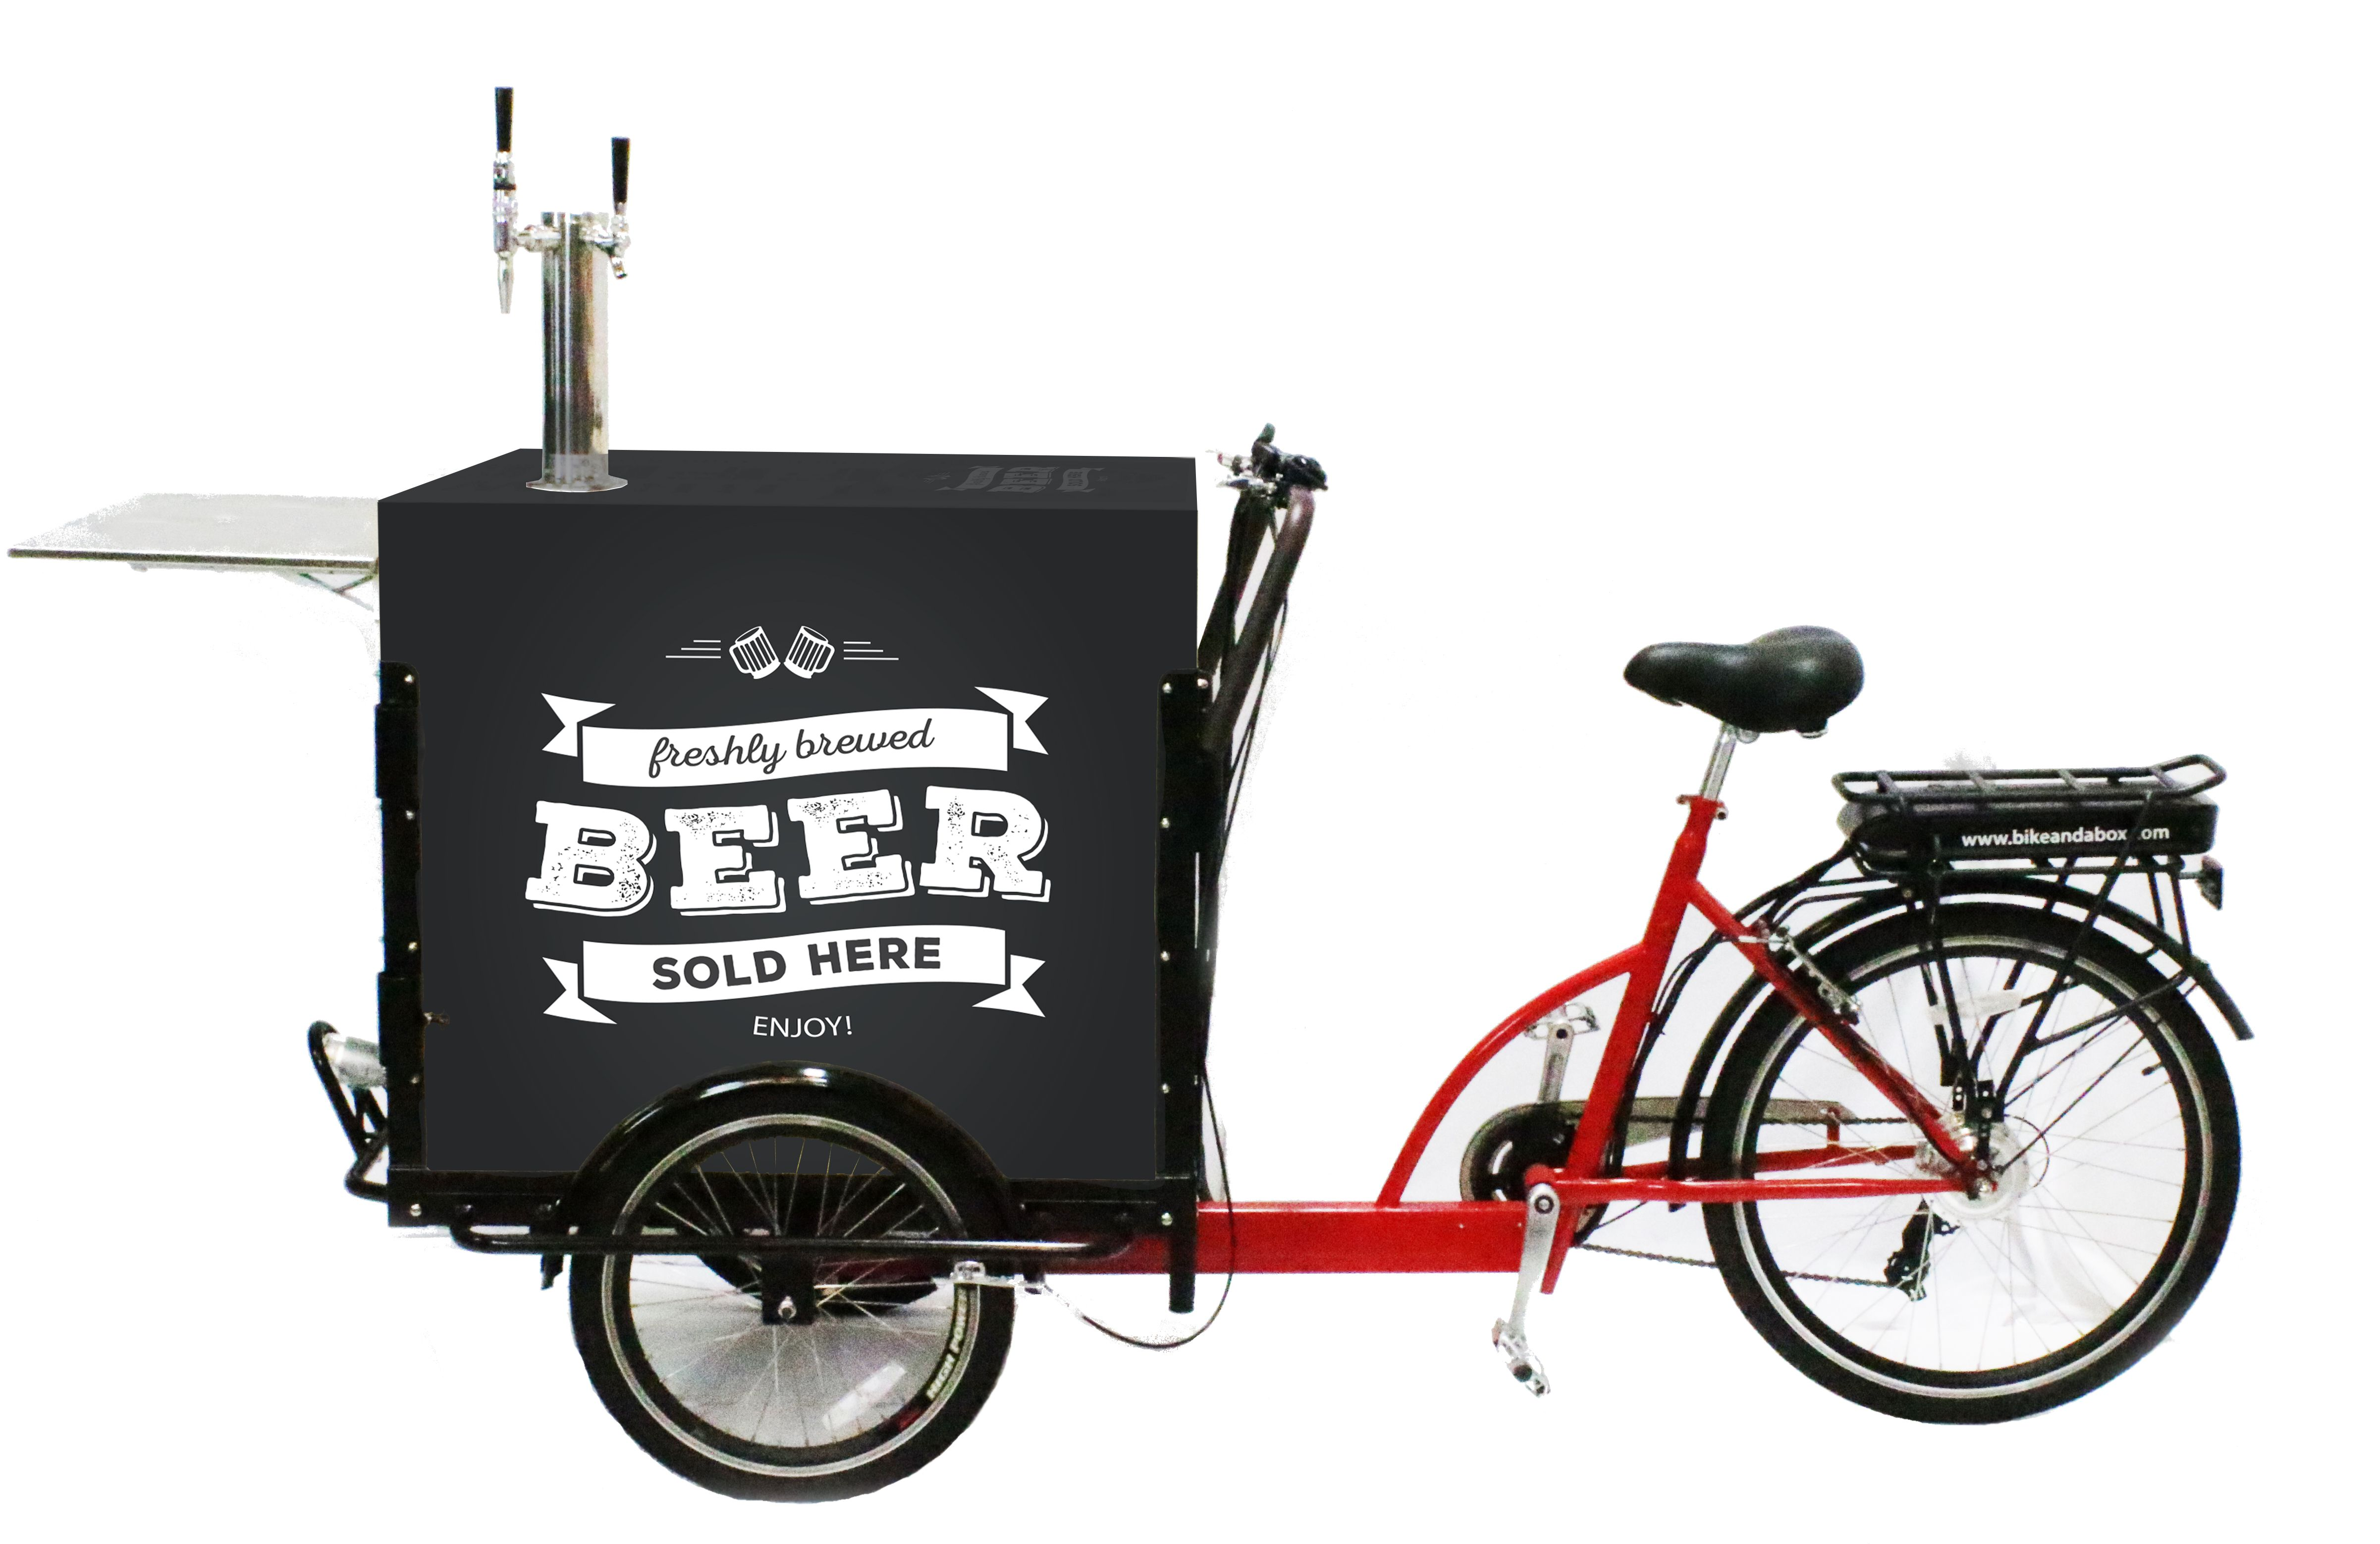 Tap Bike From Bike And A Box For Selling Beer Wine Coffee And More